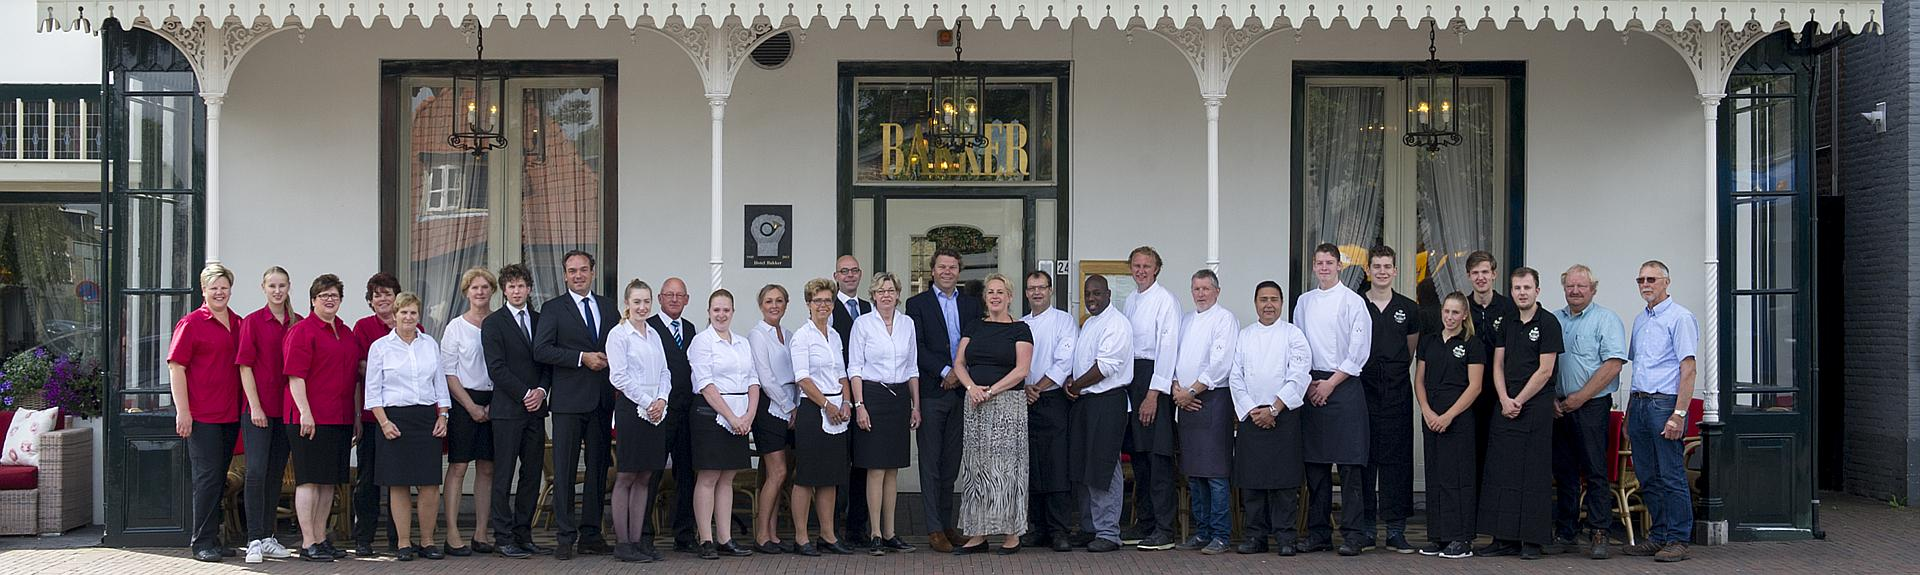 The staff of Hotel Restaurant Bakker in Vorden